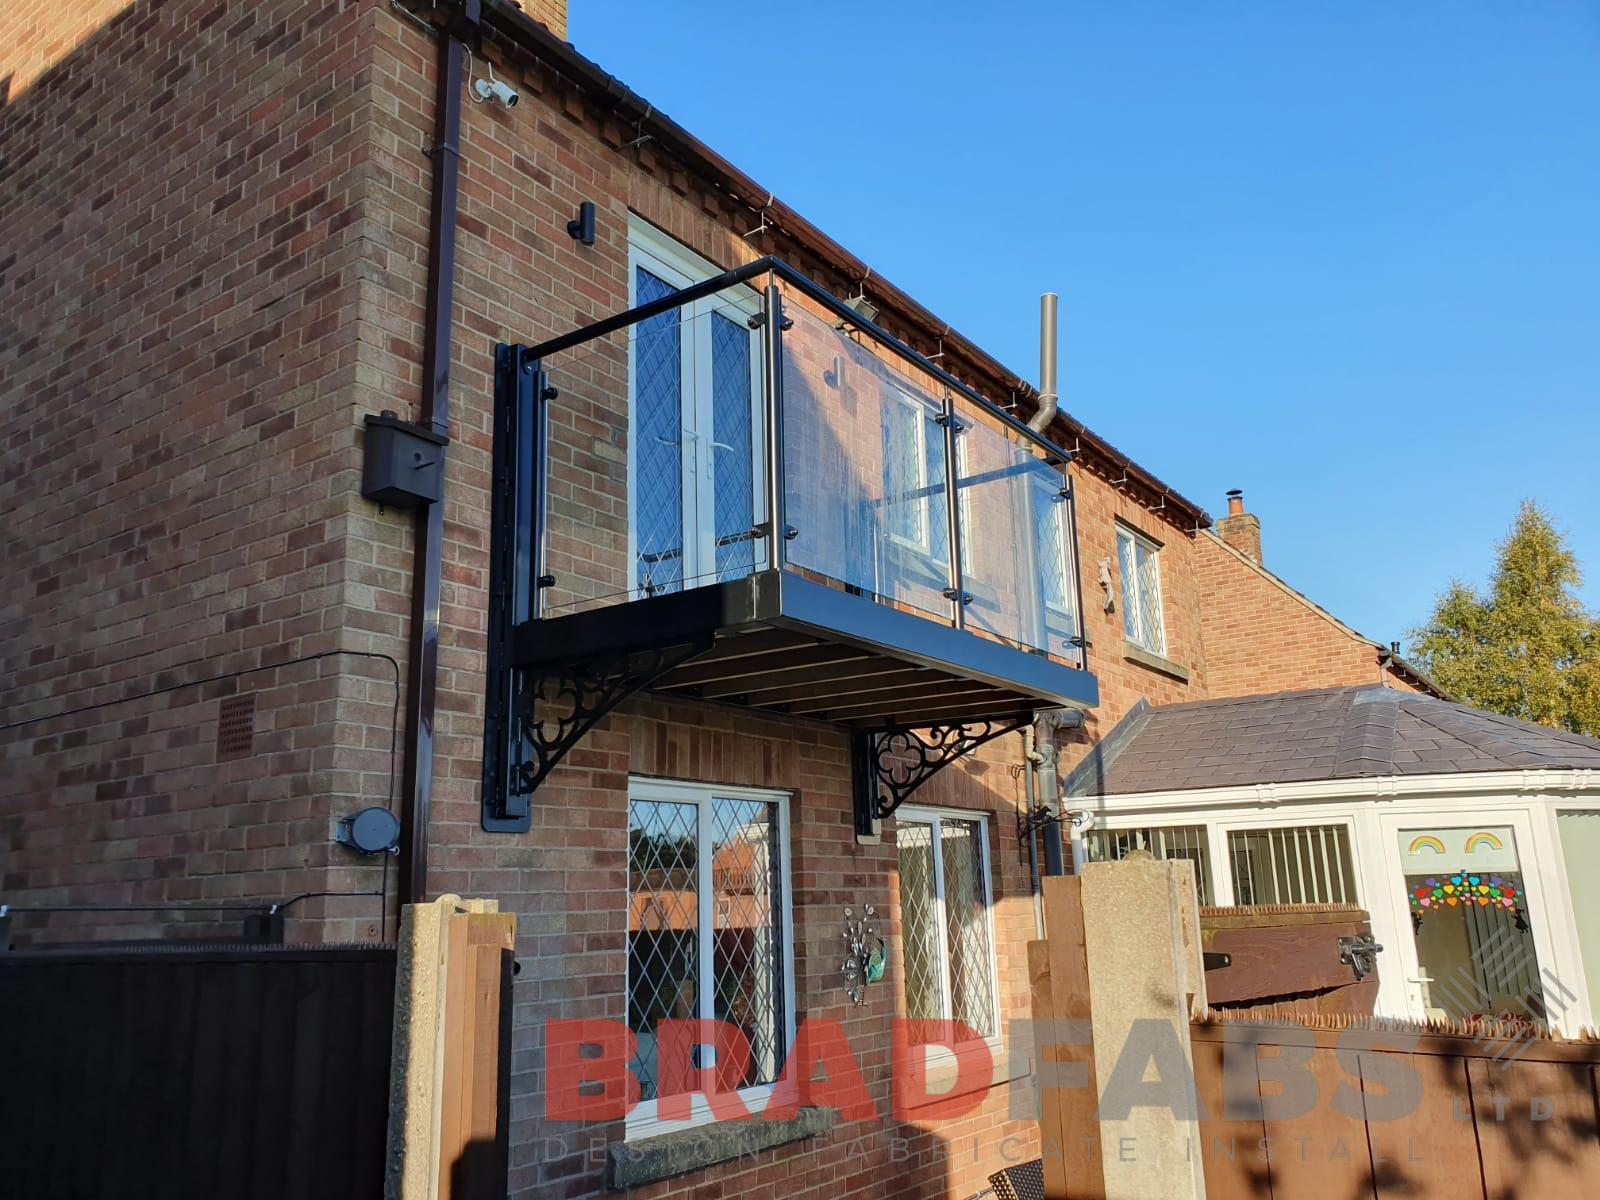 Cantilevered balcony with decorative steelwork to support brackets by Bradfabs Ltd